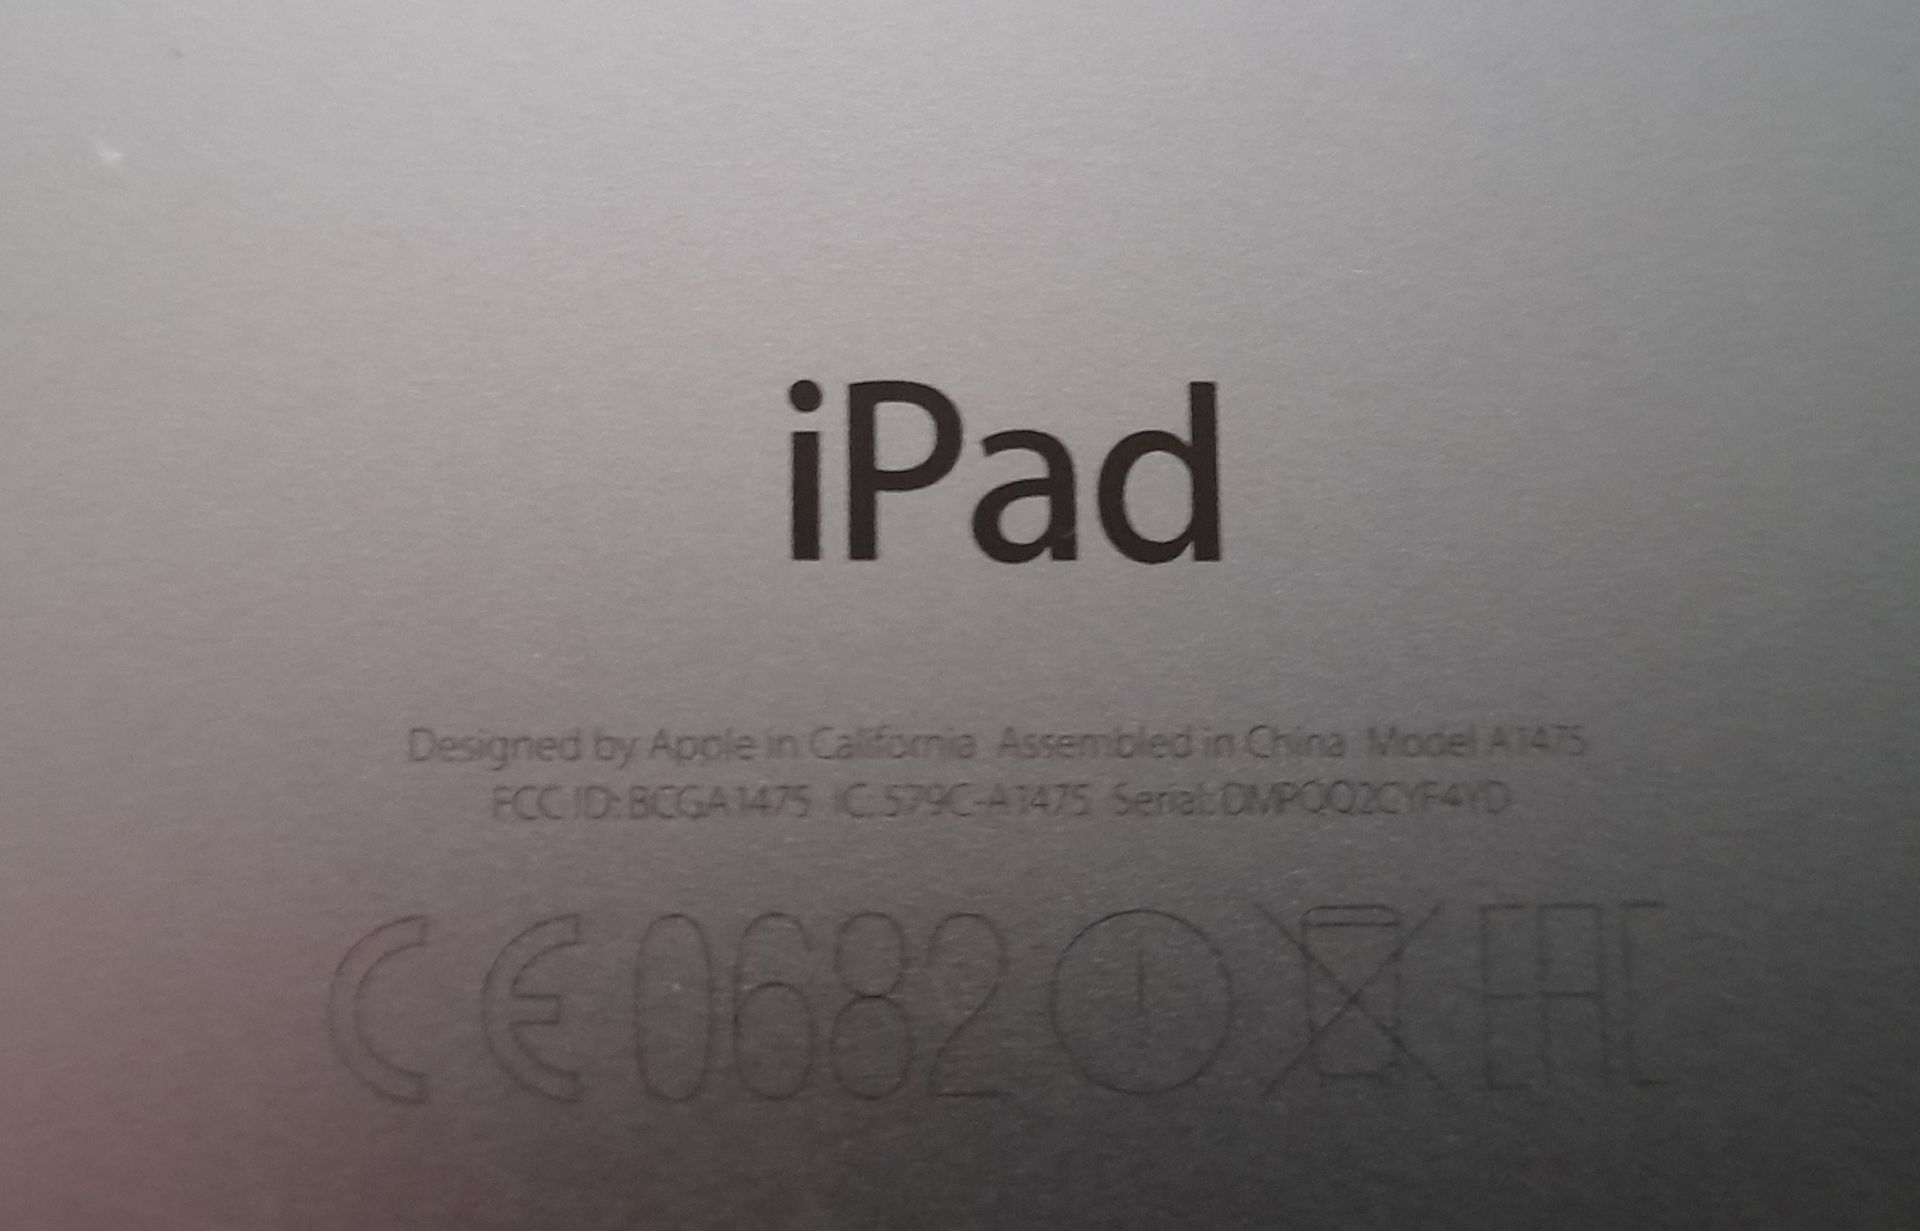 Apple iPad Air, 16GB, Model A1475, Serial Number D - Image 5 of 6